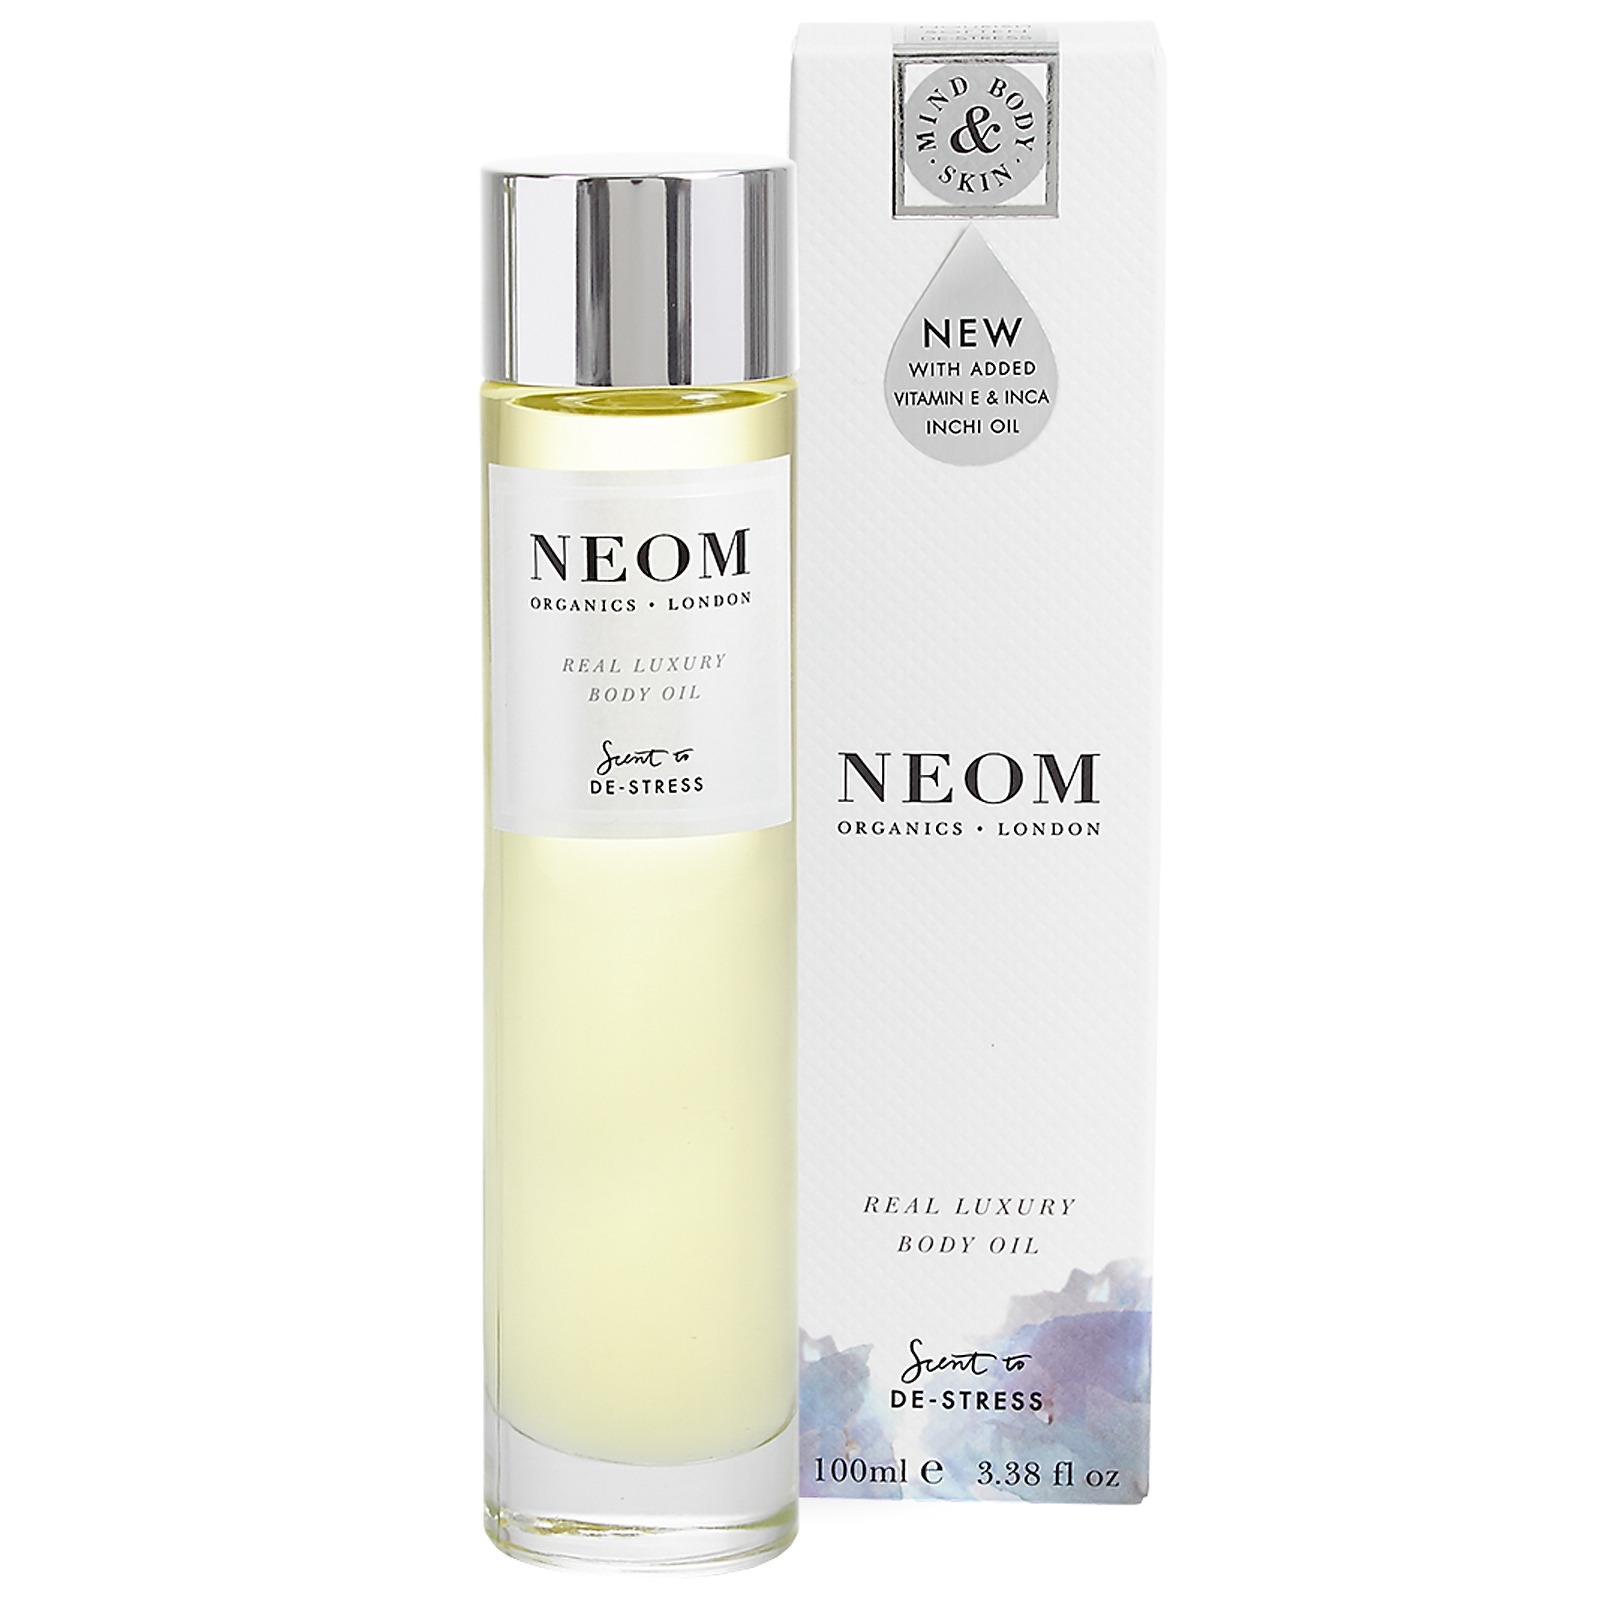 Neom Organics London Scent To De-Stress Real Luxury Body Oil 100ml